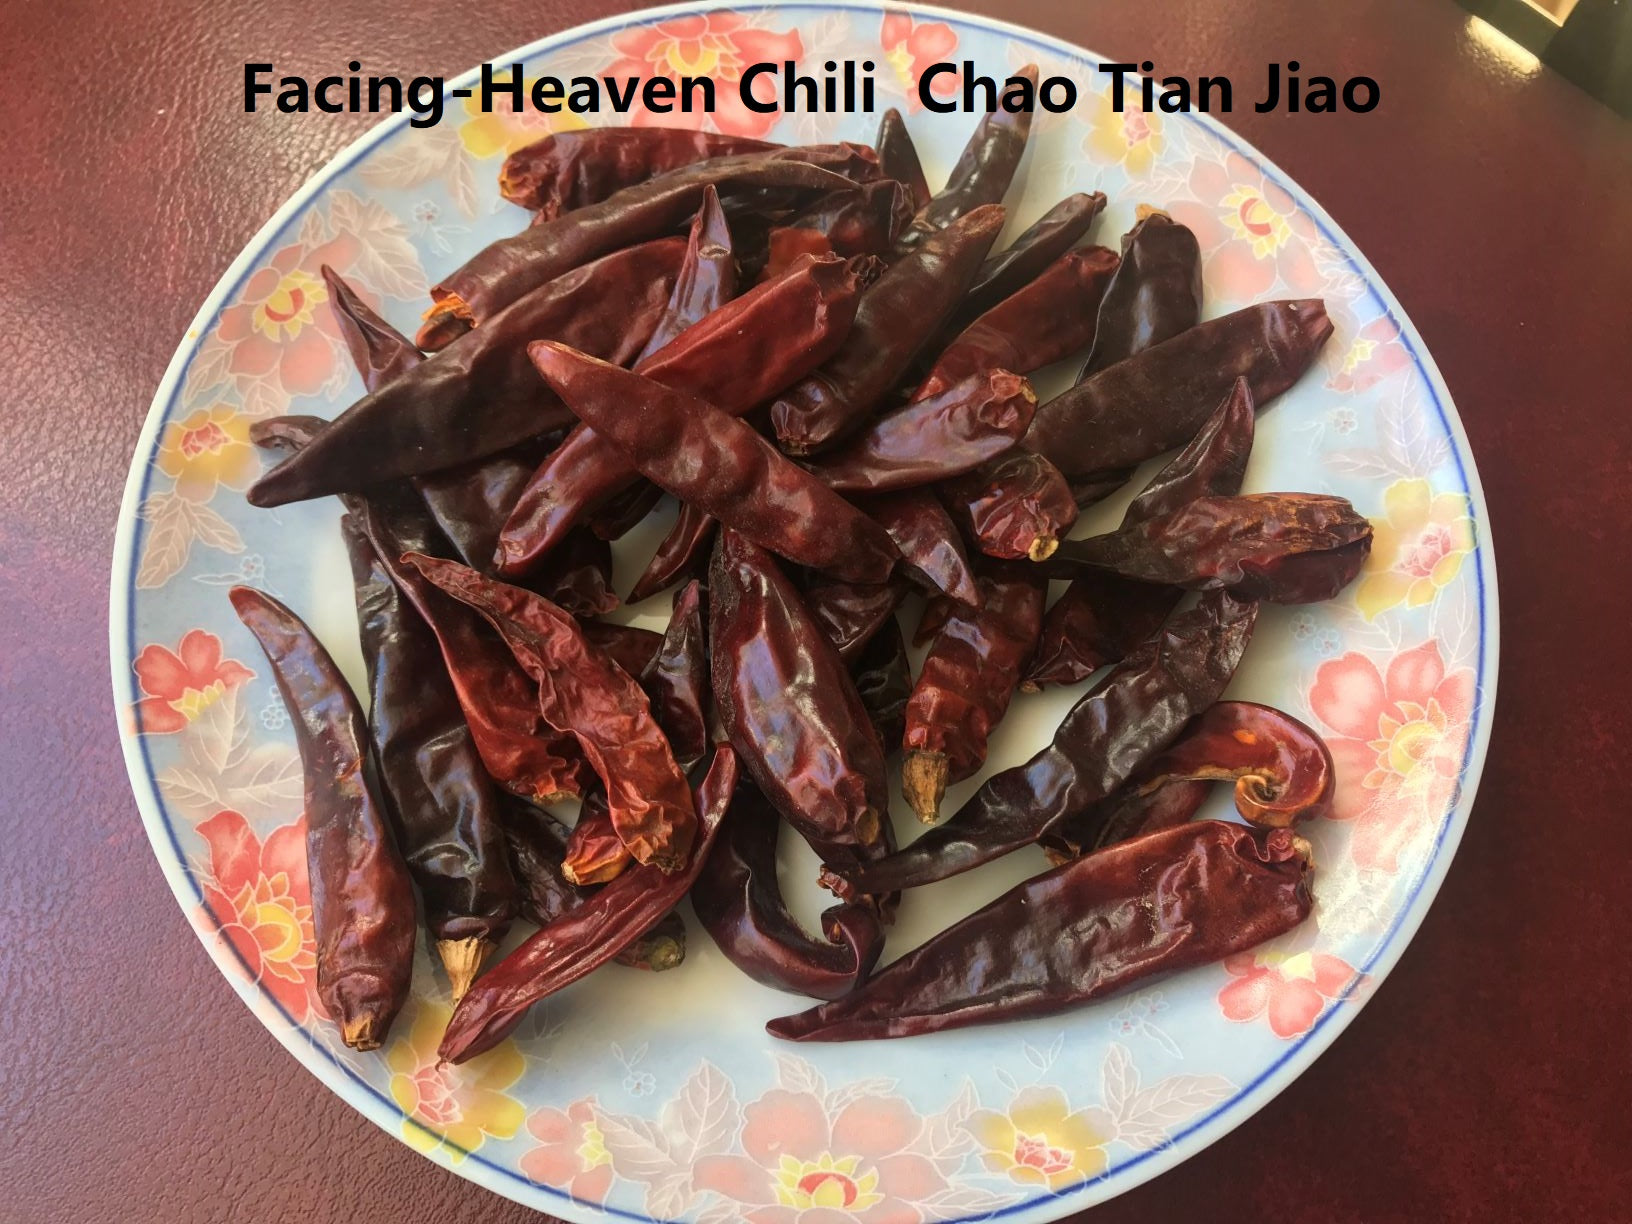 Sichuan Chili Pepper Variety Pack (4 chilies 3.5oz or 7oz each)